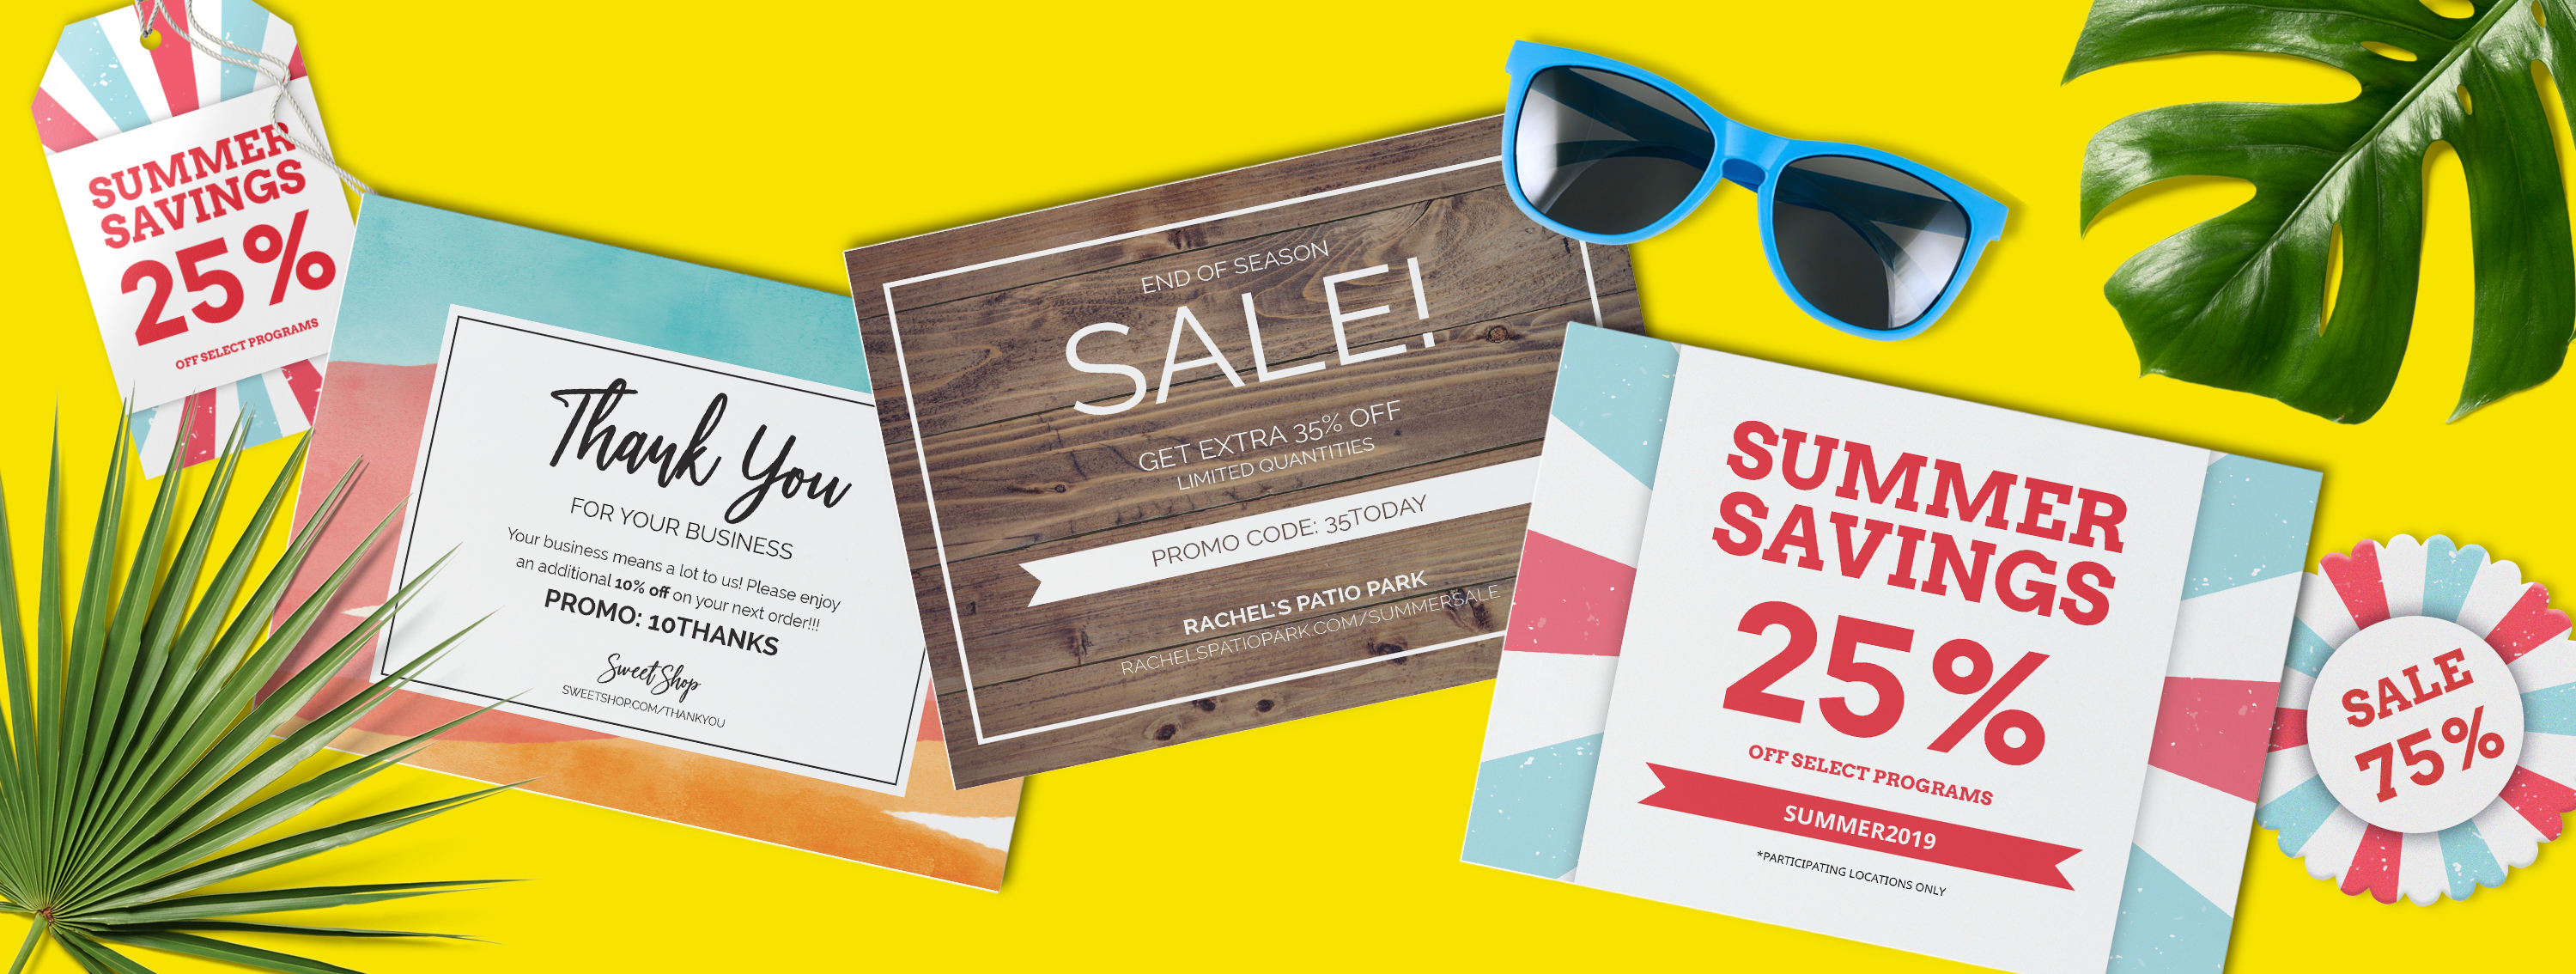 Promotional cards for small business summer sales